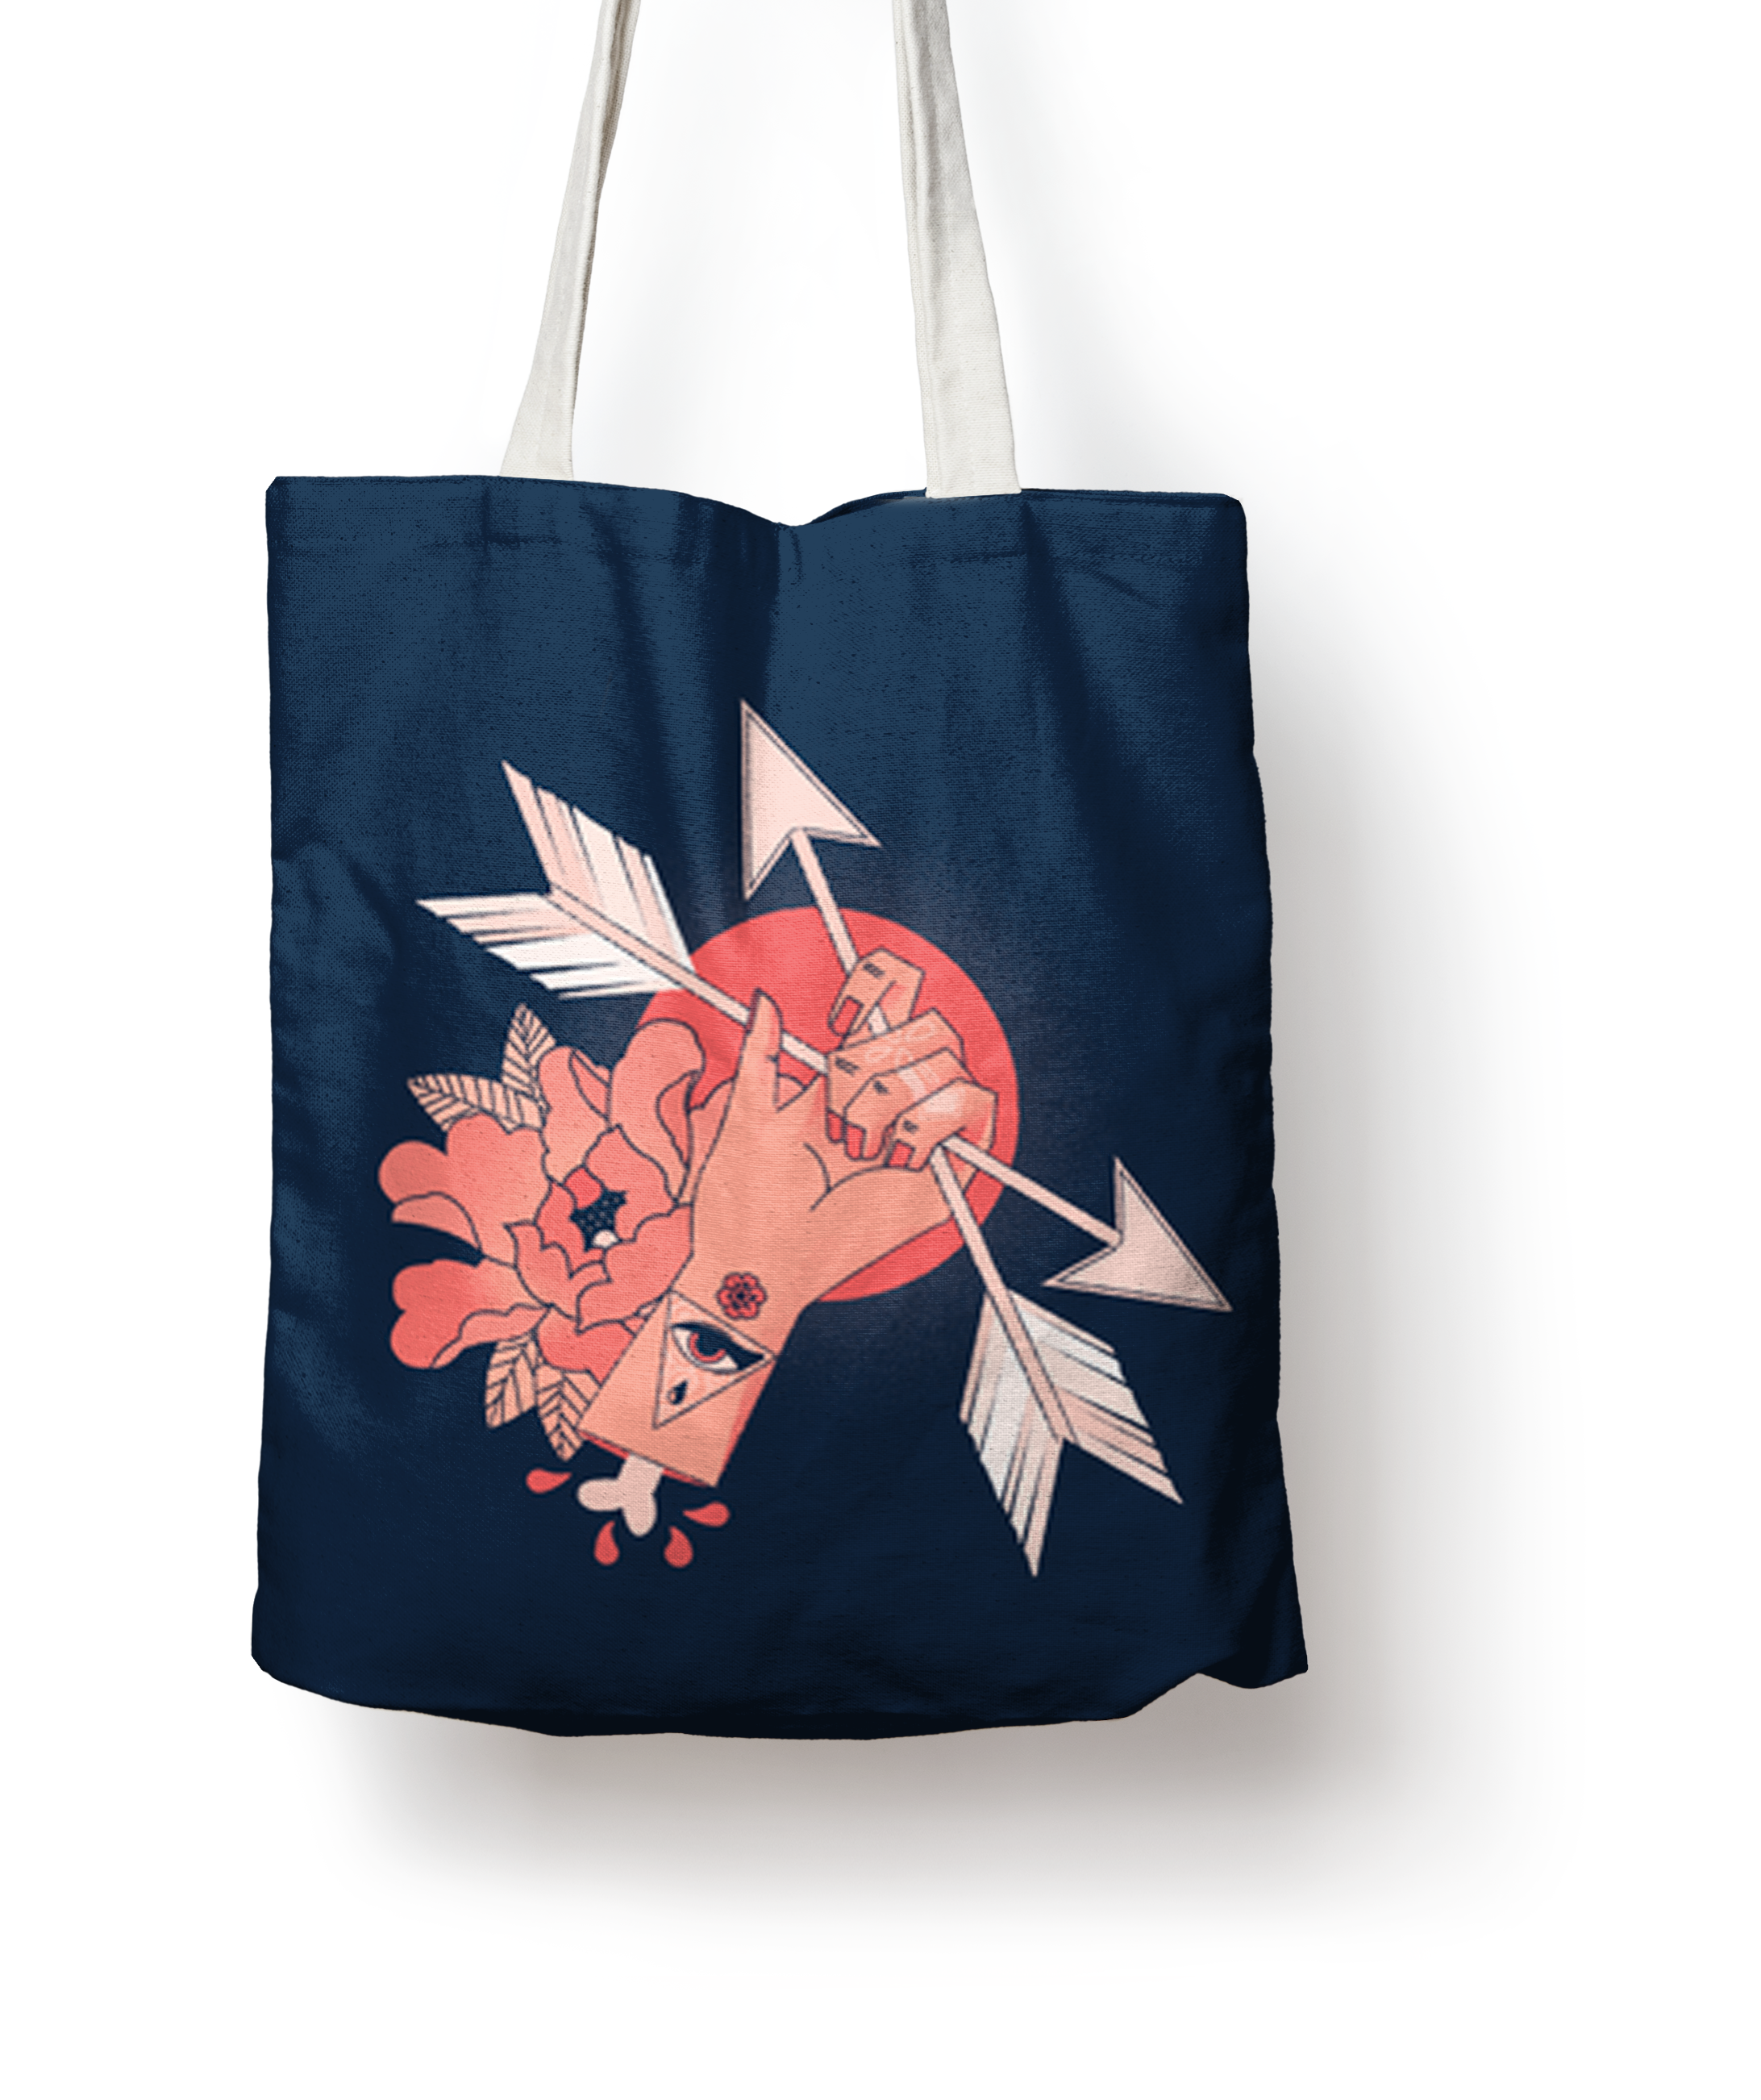 Canvas-Tote-Bag-MockUp2.png